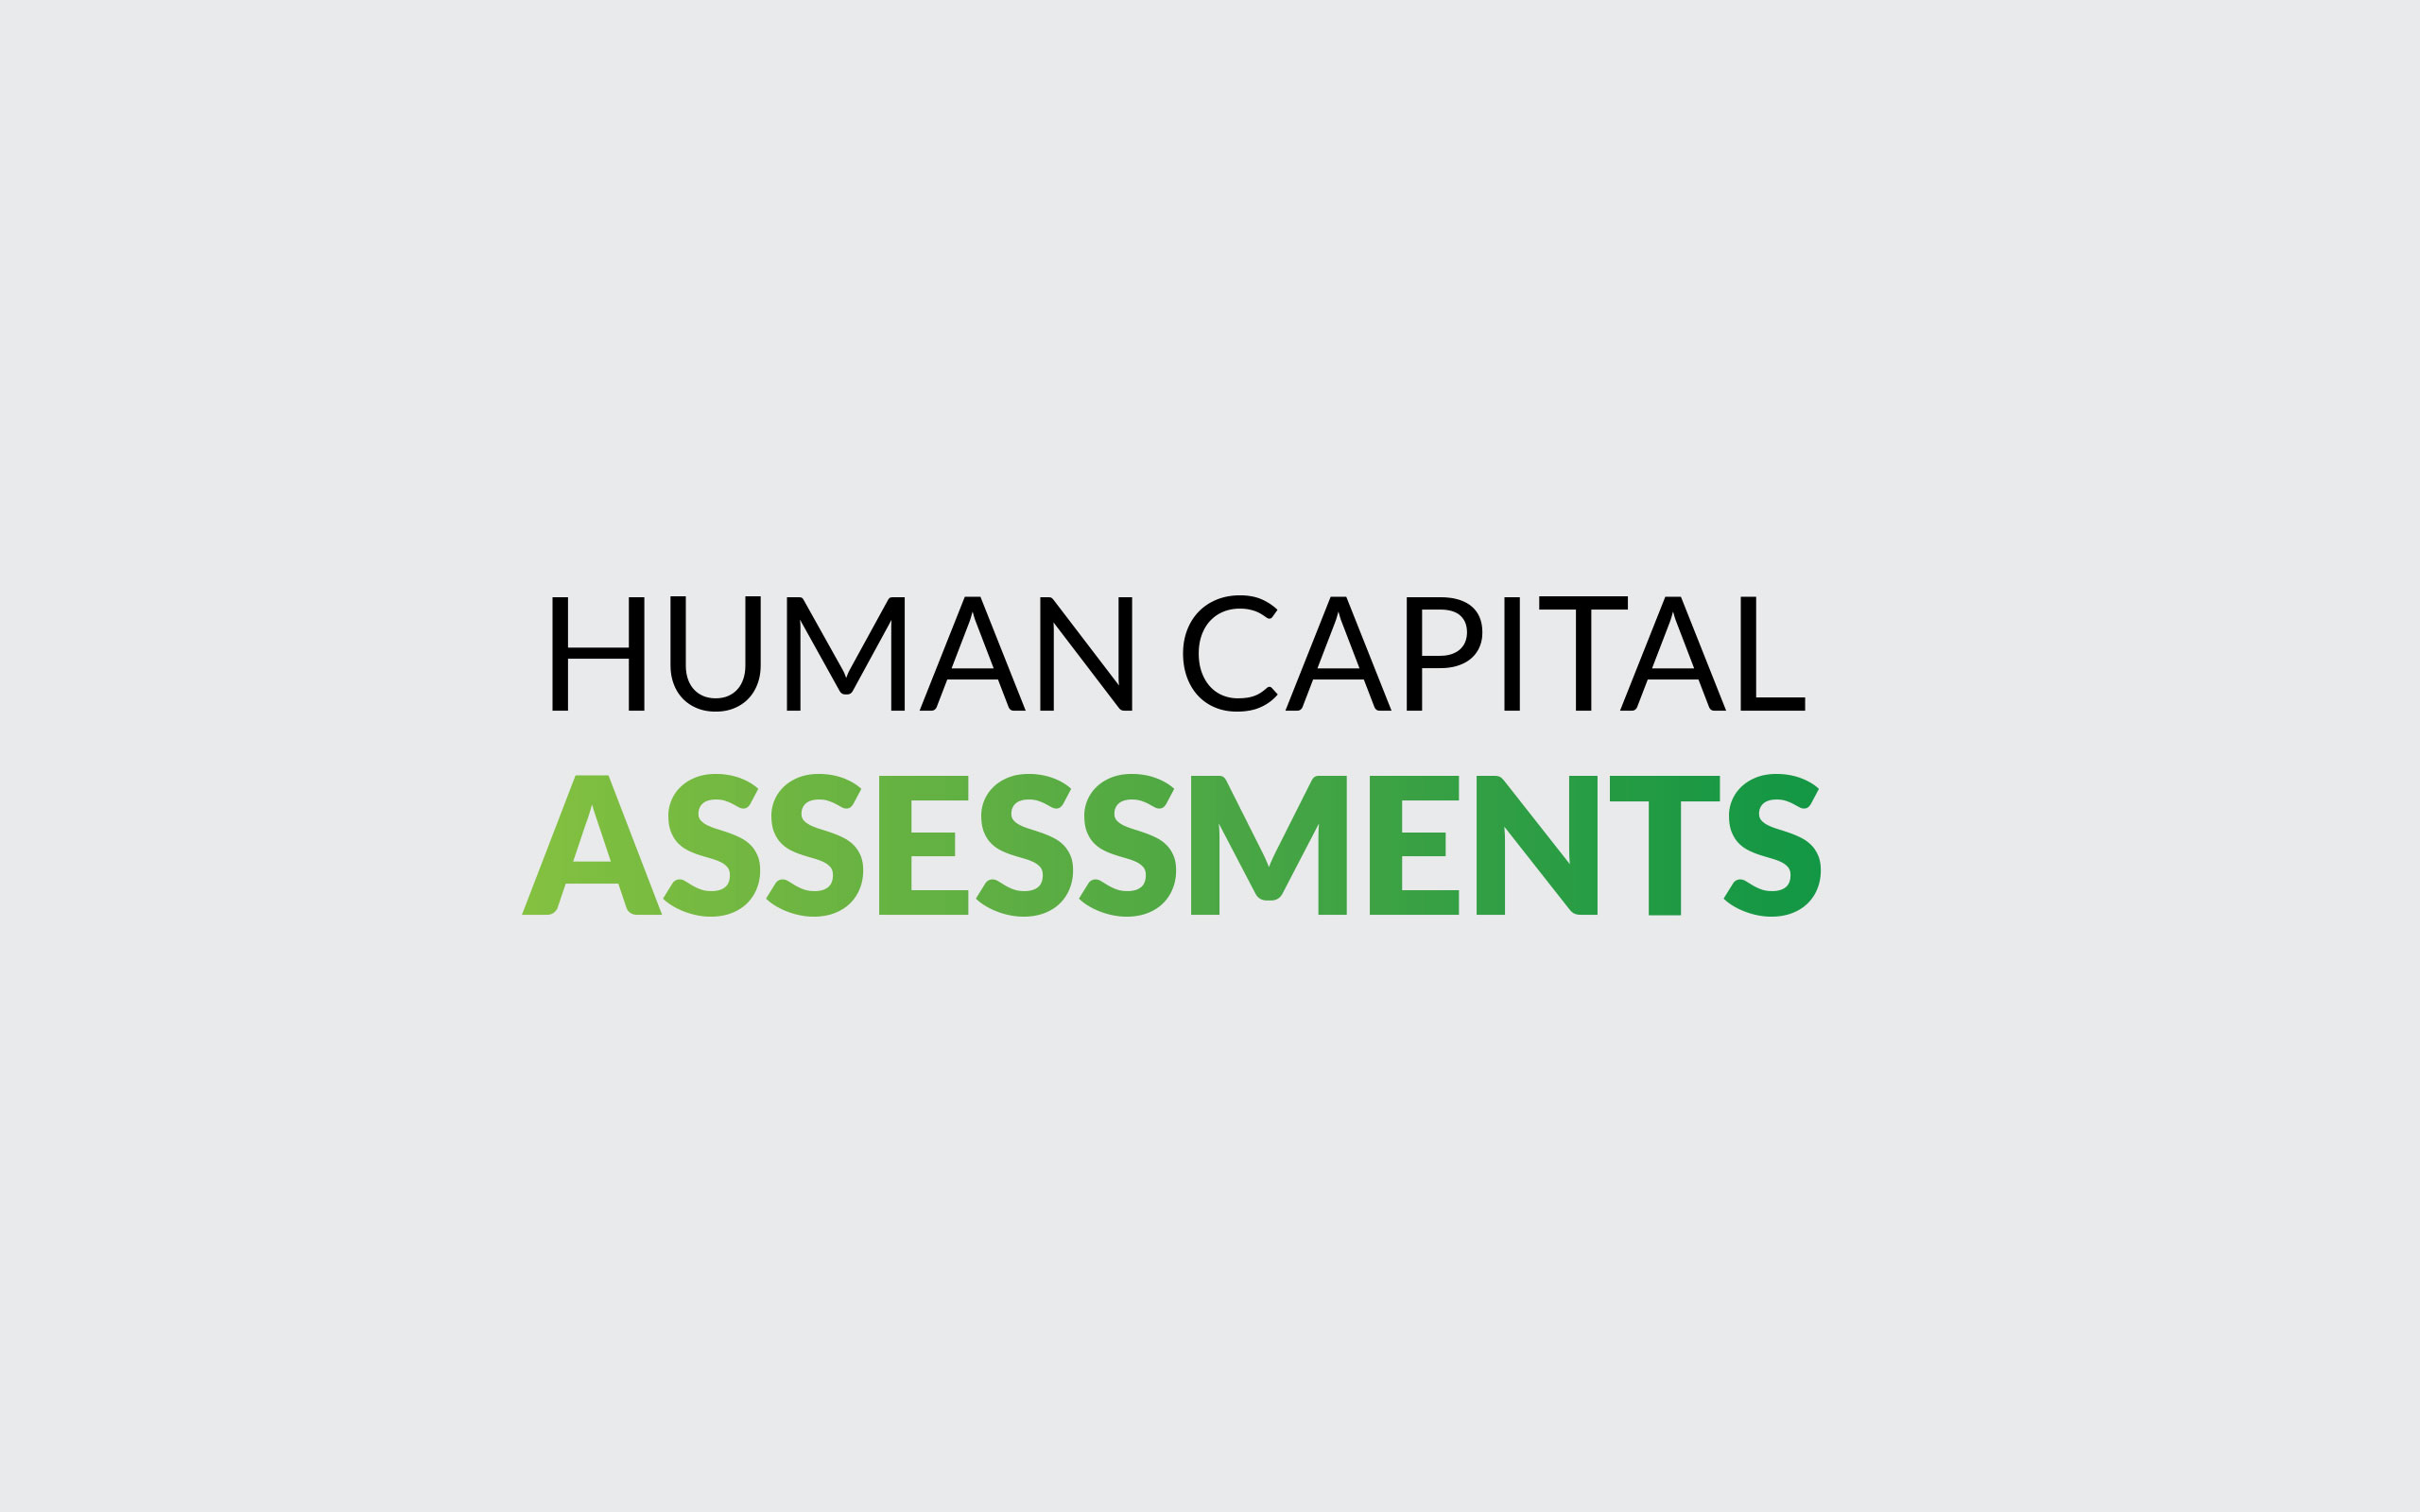 Human Capital Assessments